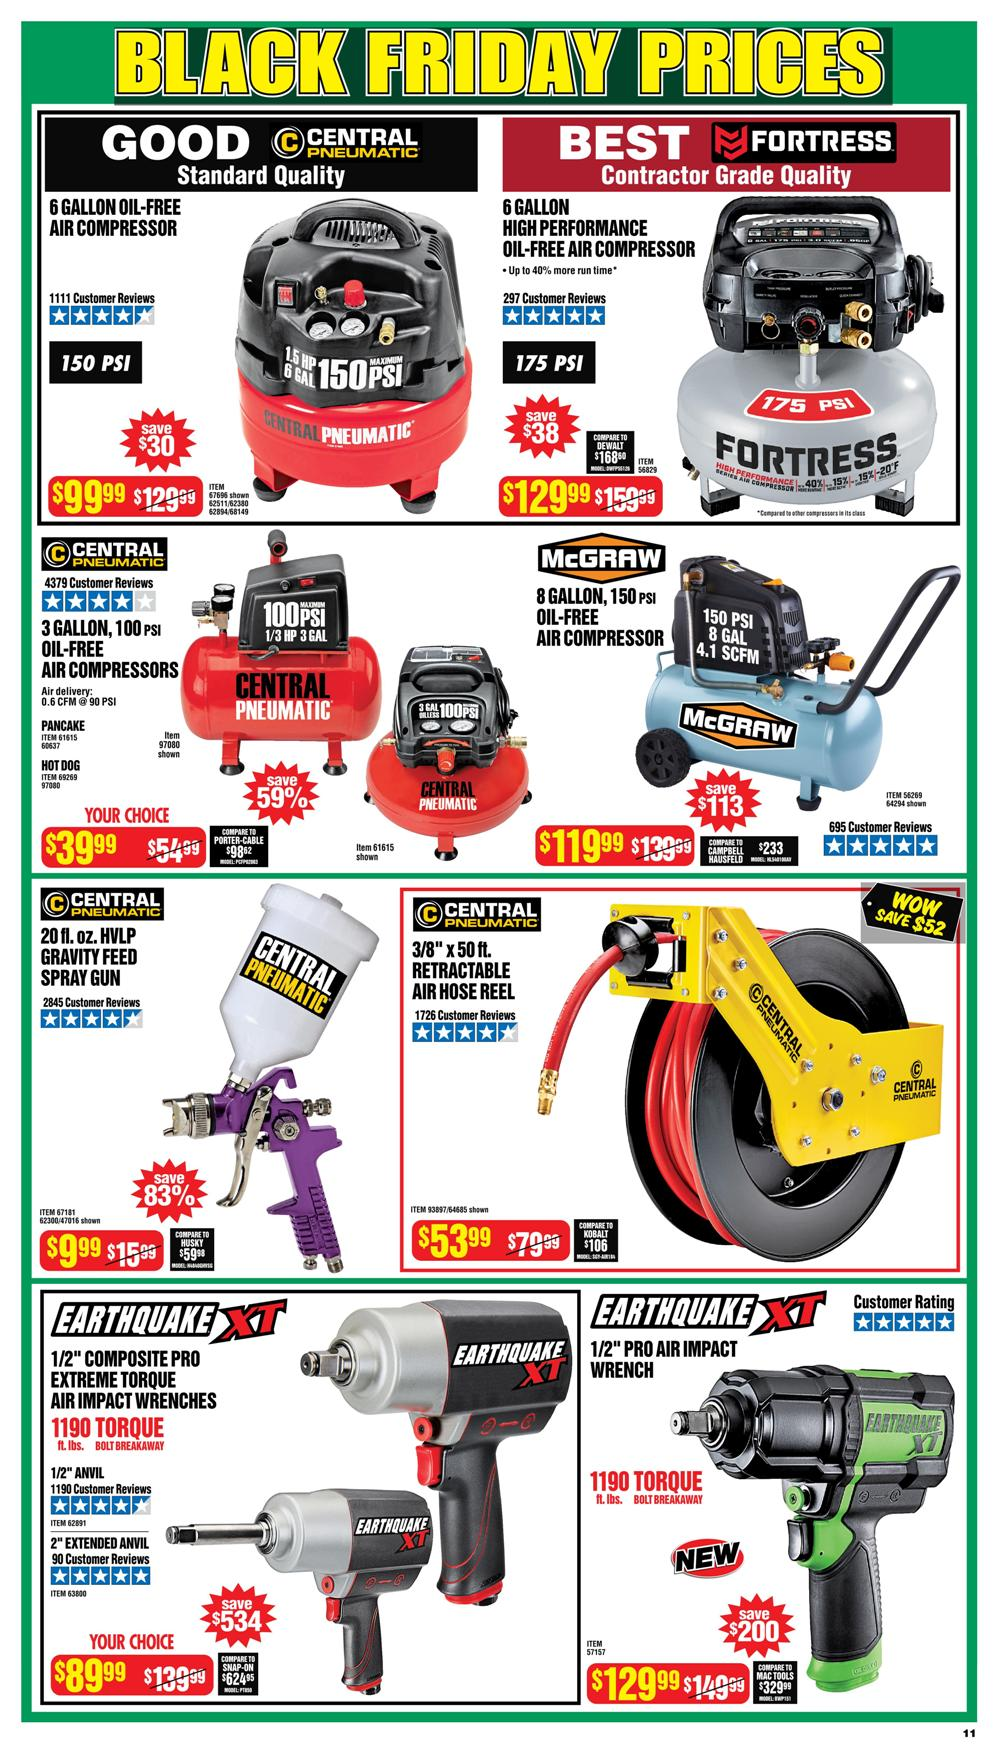 Harbor Freight Black Friday 2020 Page 11